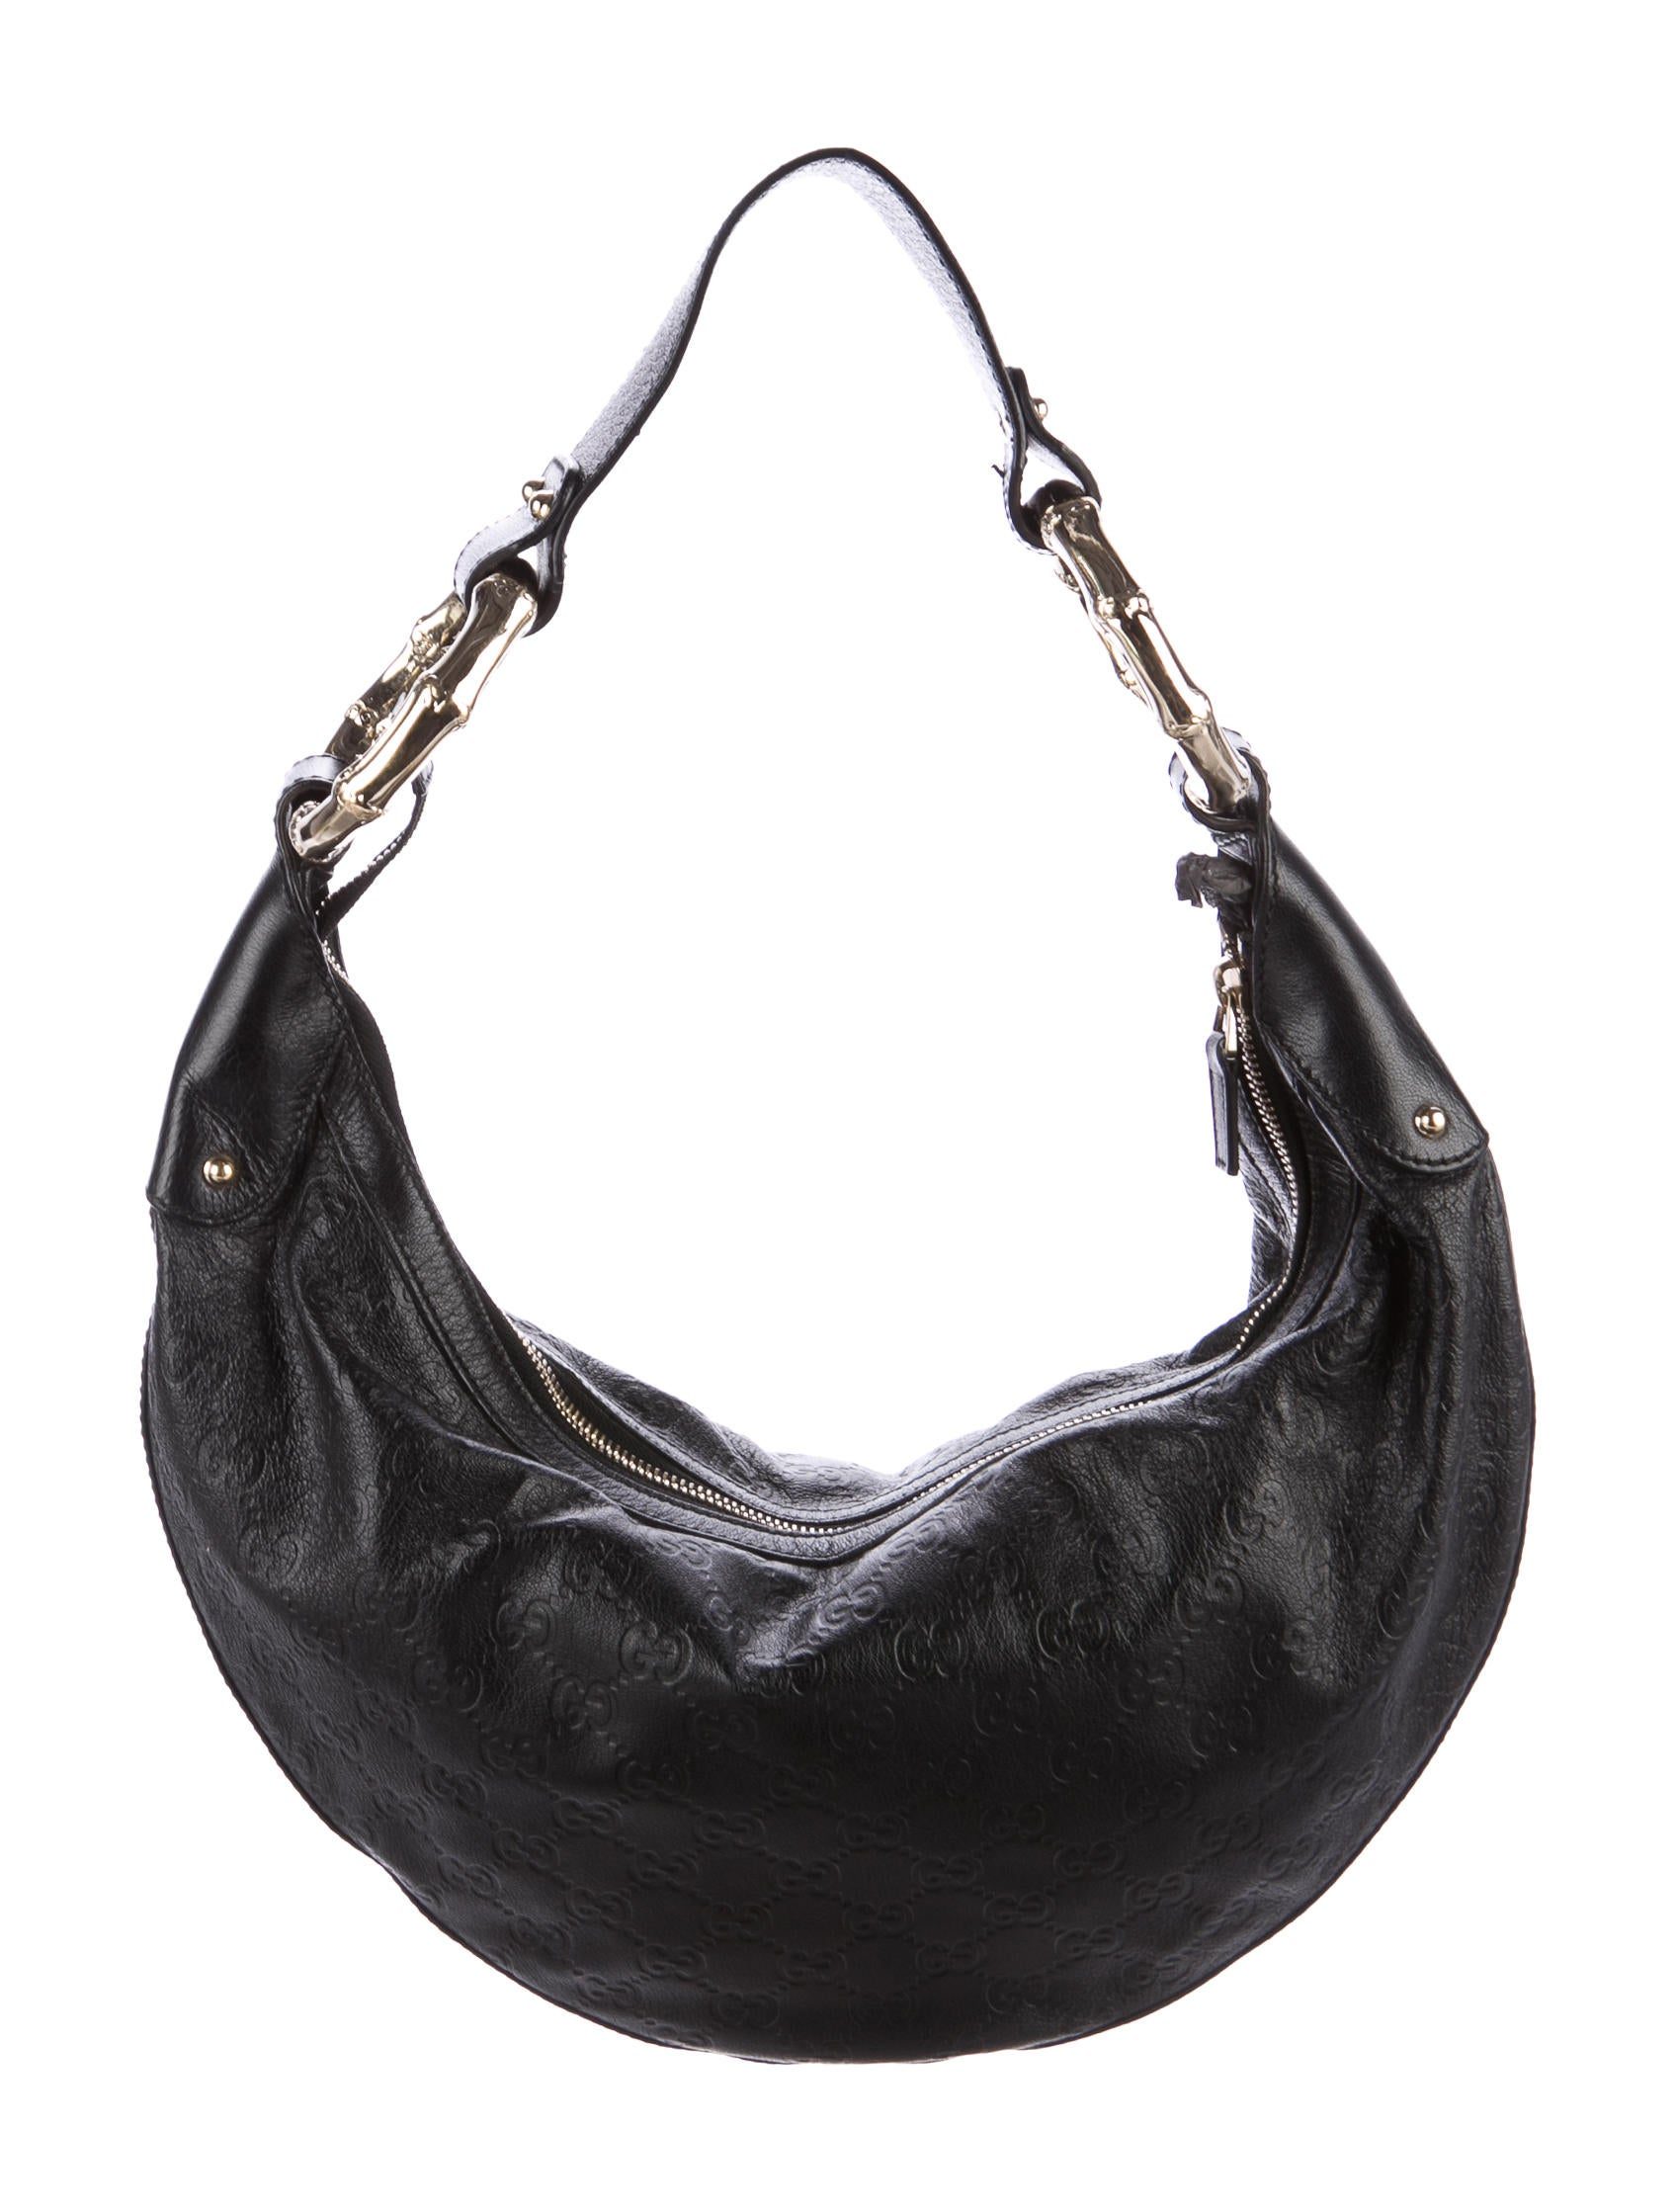 8f48ccca0575c7 Gucci Guccissima Leather Half Moon Hobo Bags | Stanford Center for ...